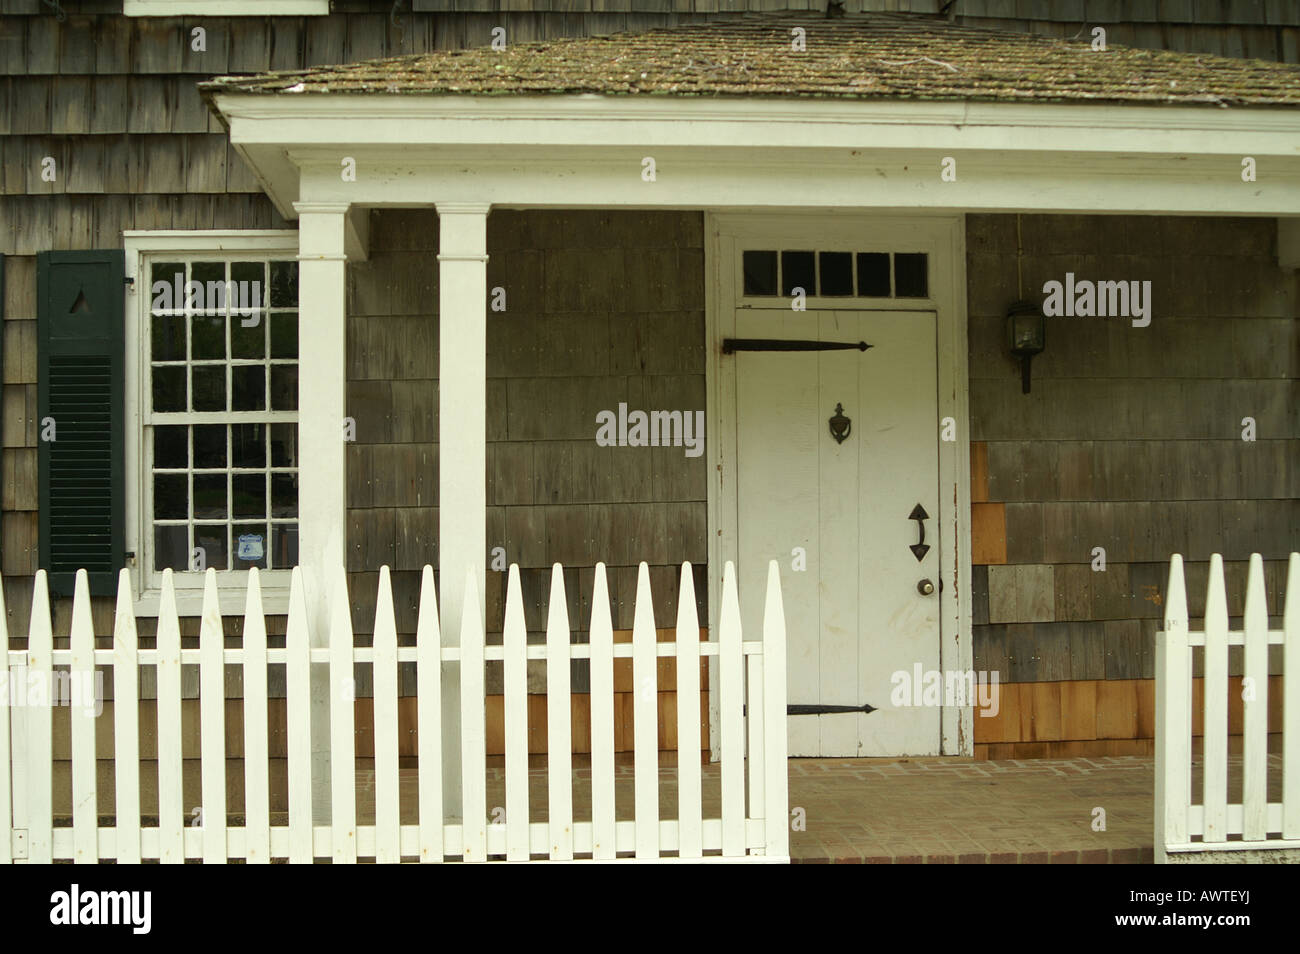 Colonial American House, With White Picket Fence And Strap Hinges On The  Door.